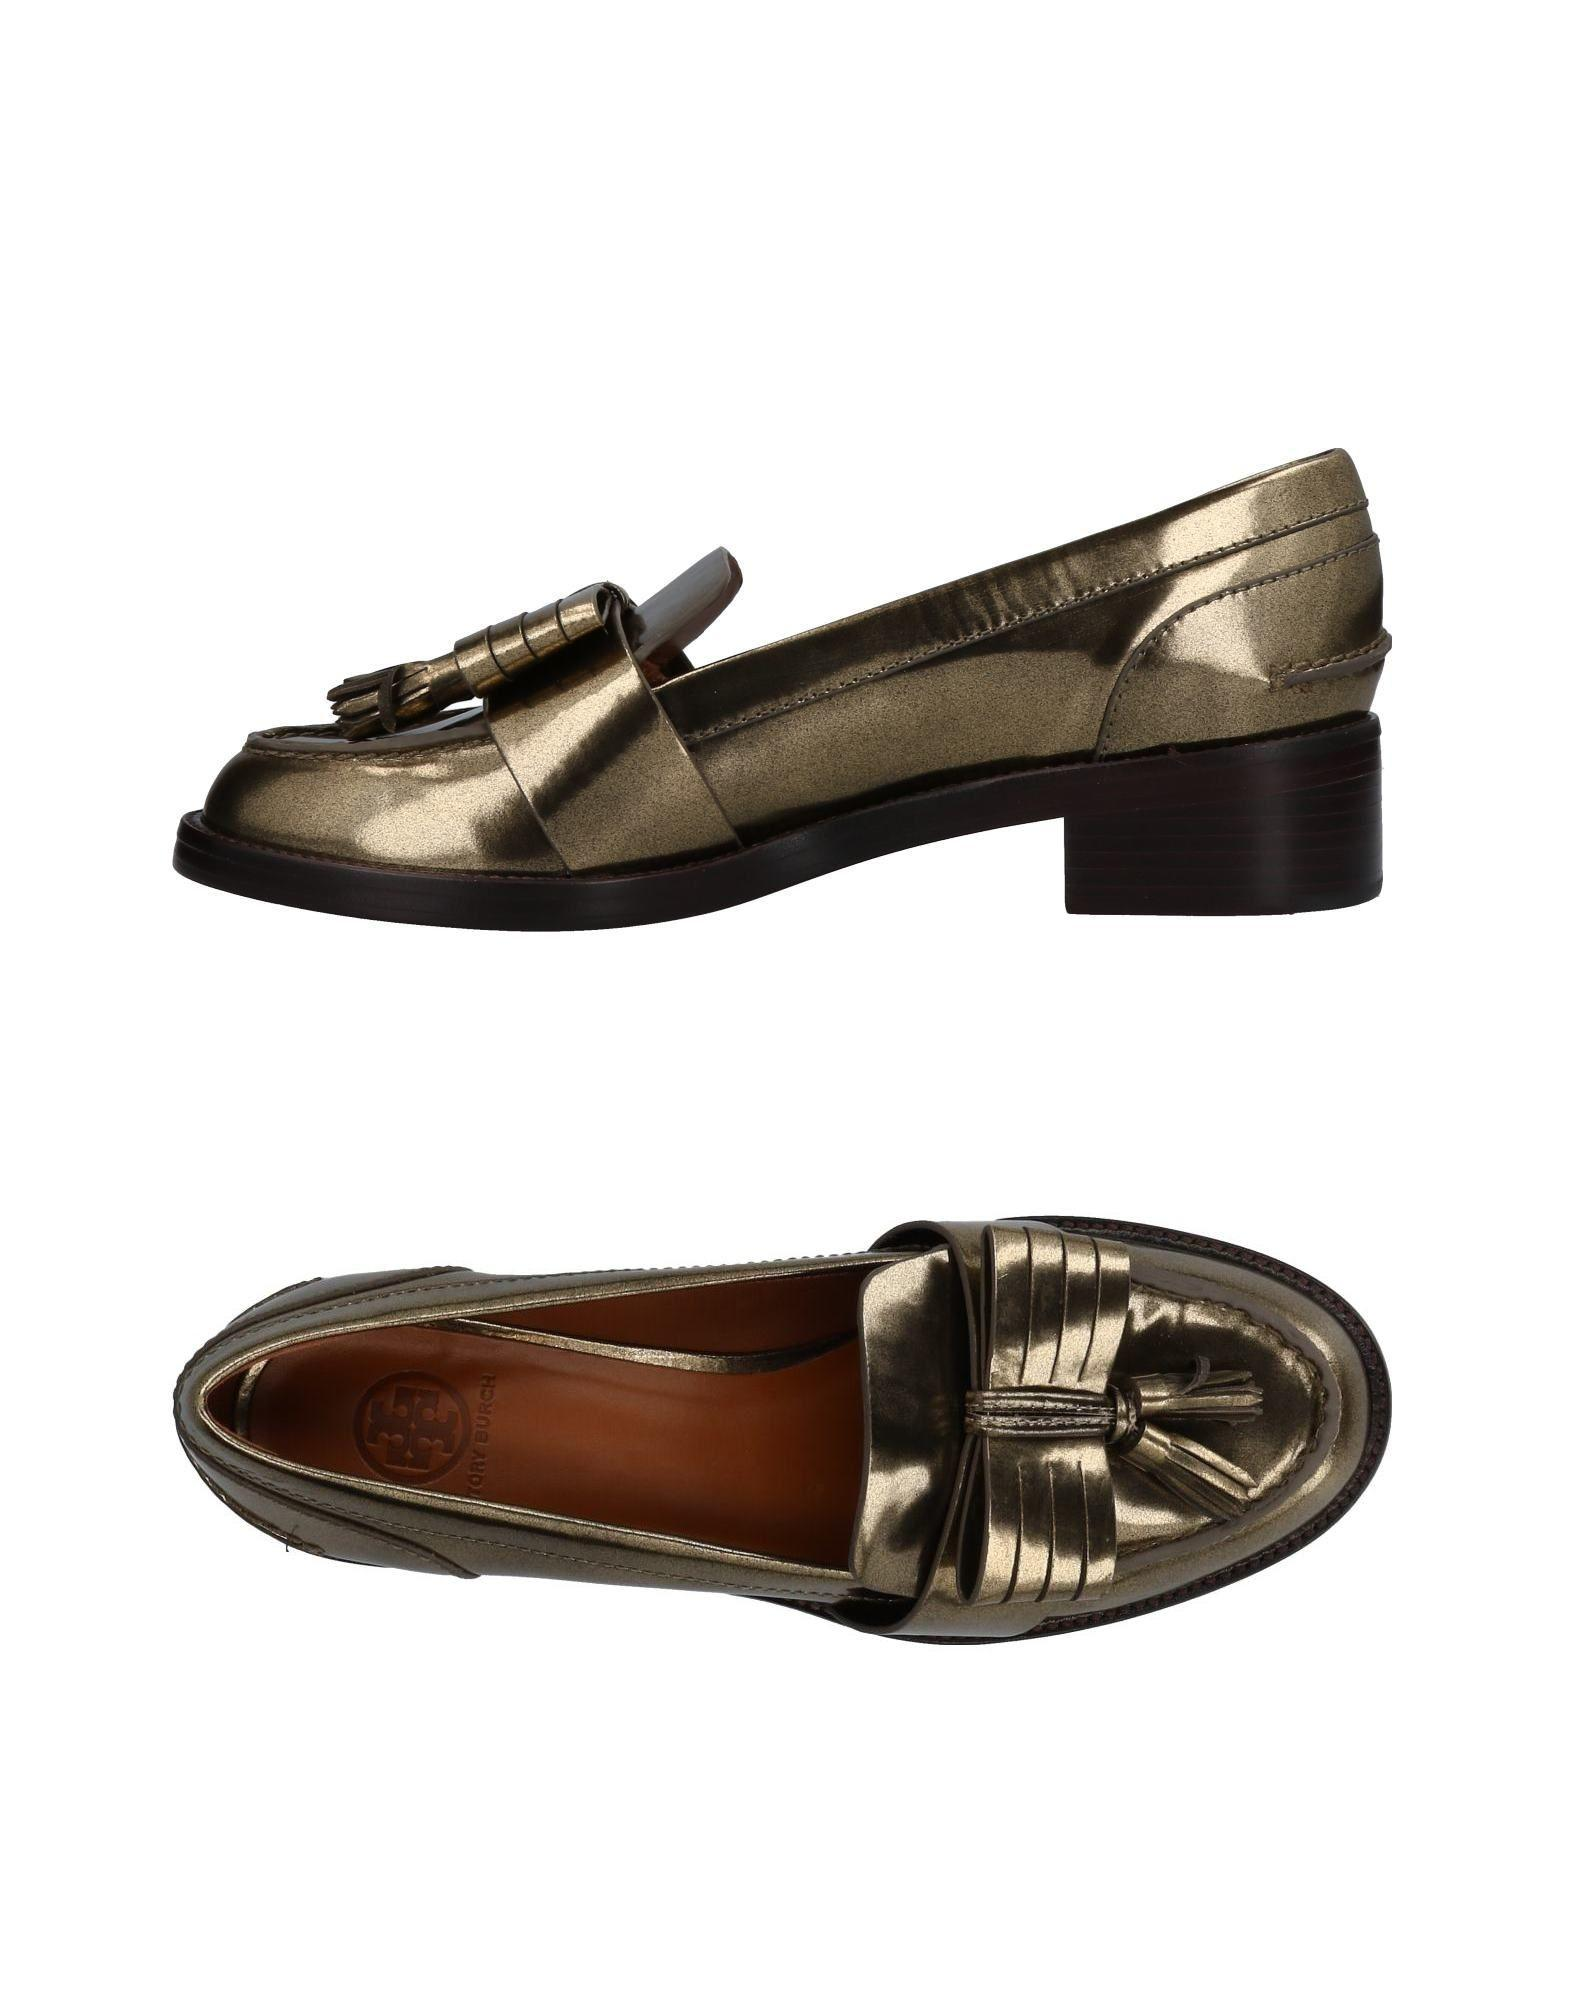 Tory Burch Loafers In Gold